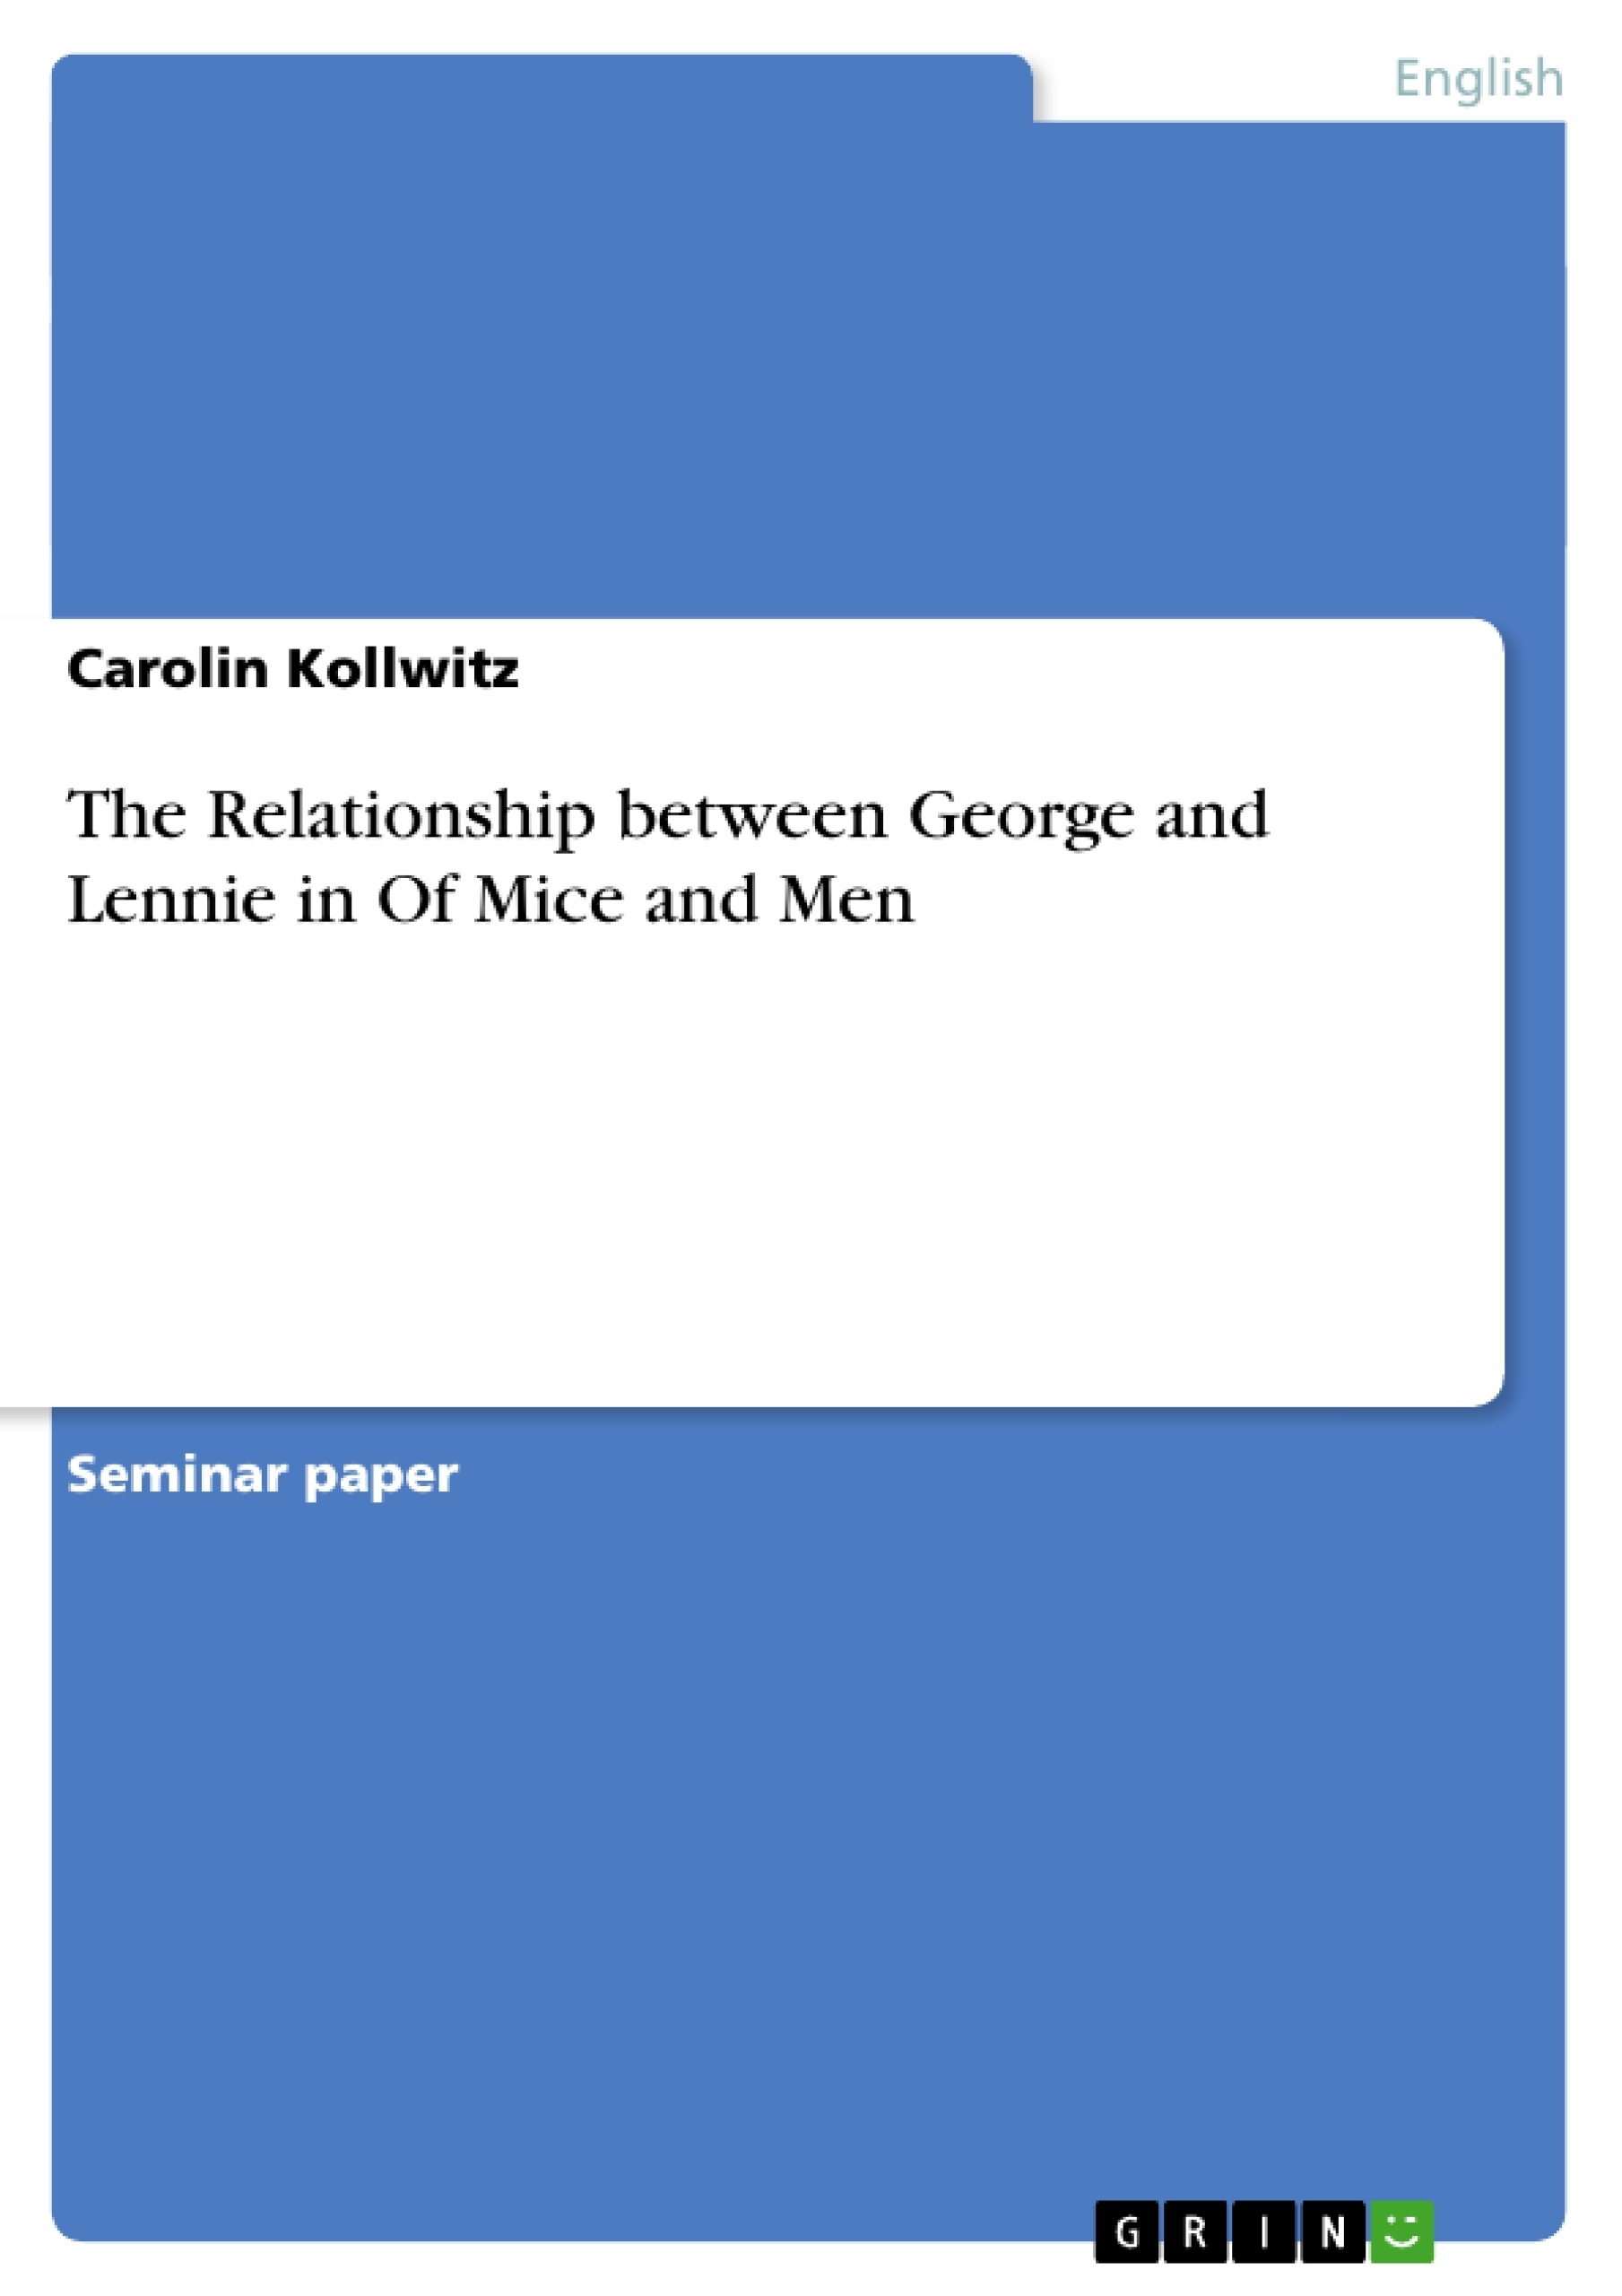 the relationship between george and lennie in of mice and men upload your own papers earn money and win an iphone 7